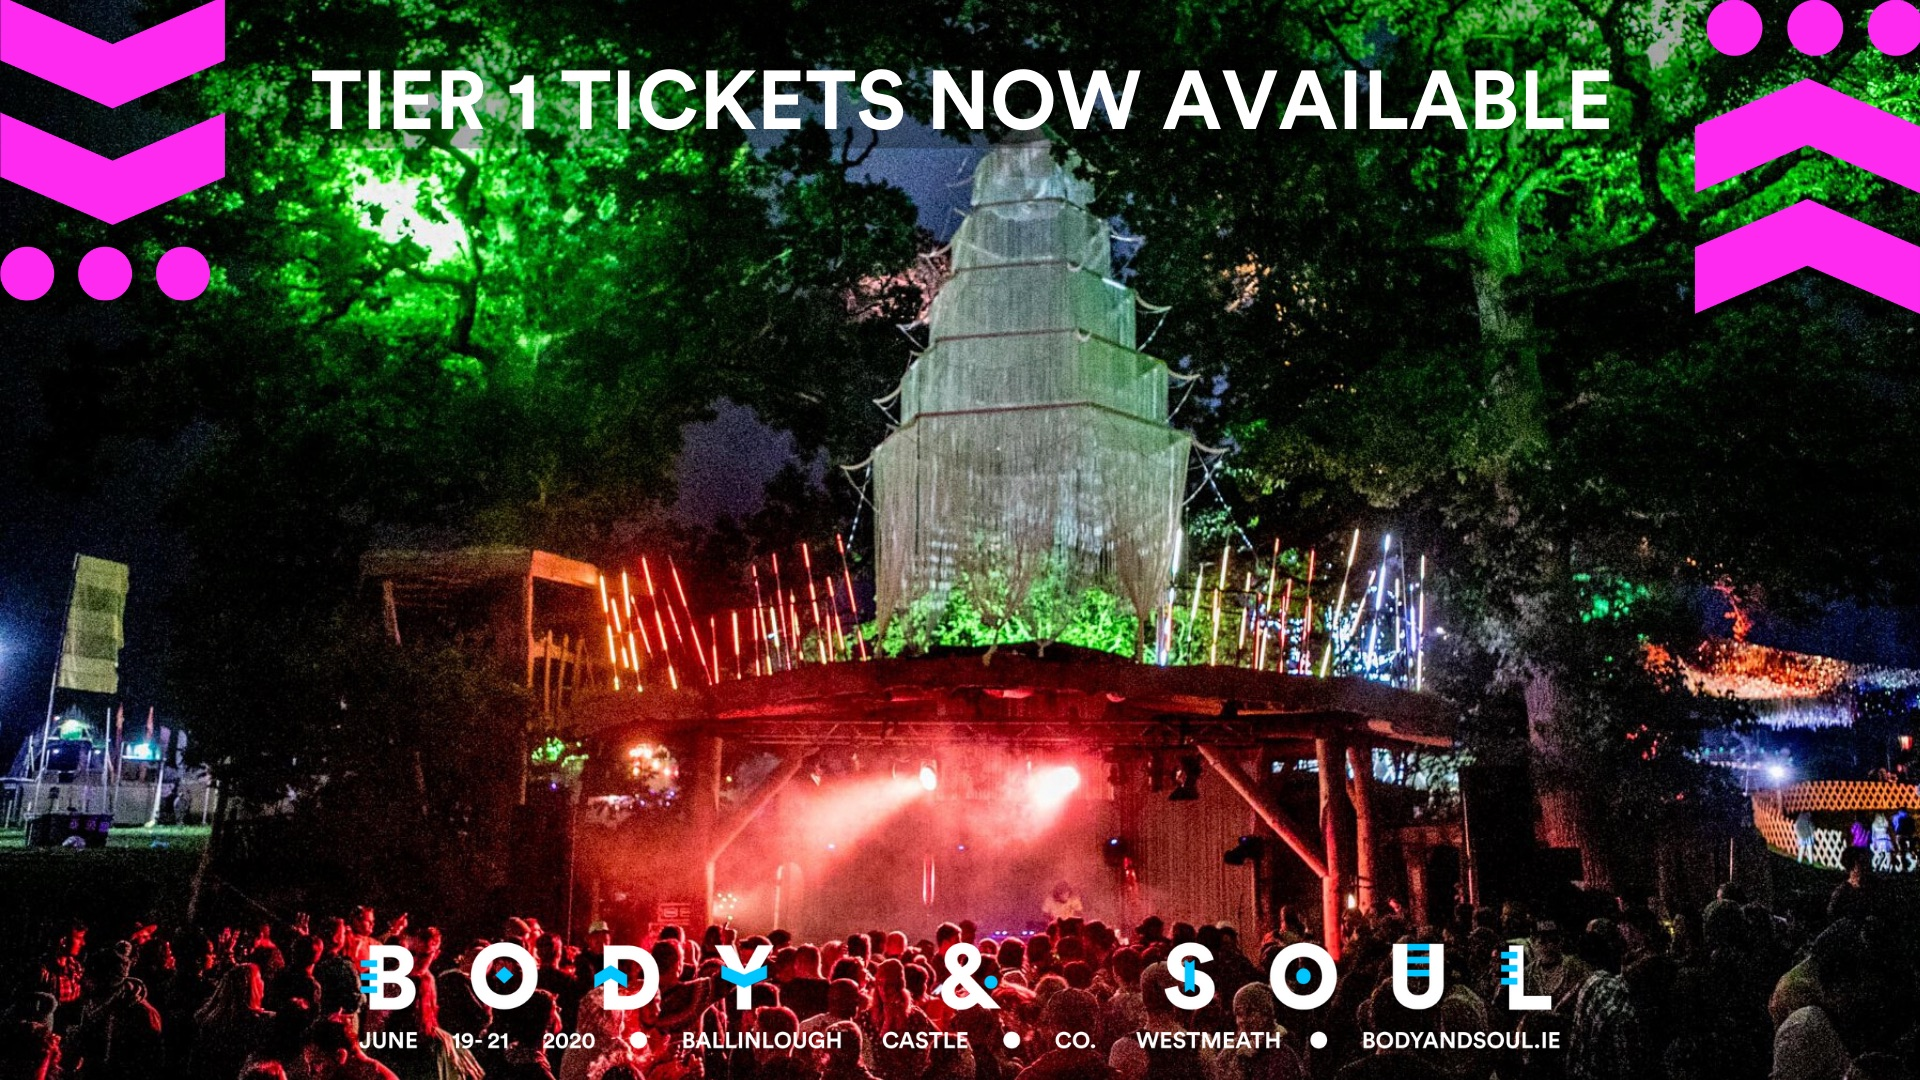 Tickets for Body&Soul Festival 2018 - Boutique Camping in Co.Westmeath from Ticketbooth Europe